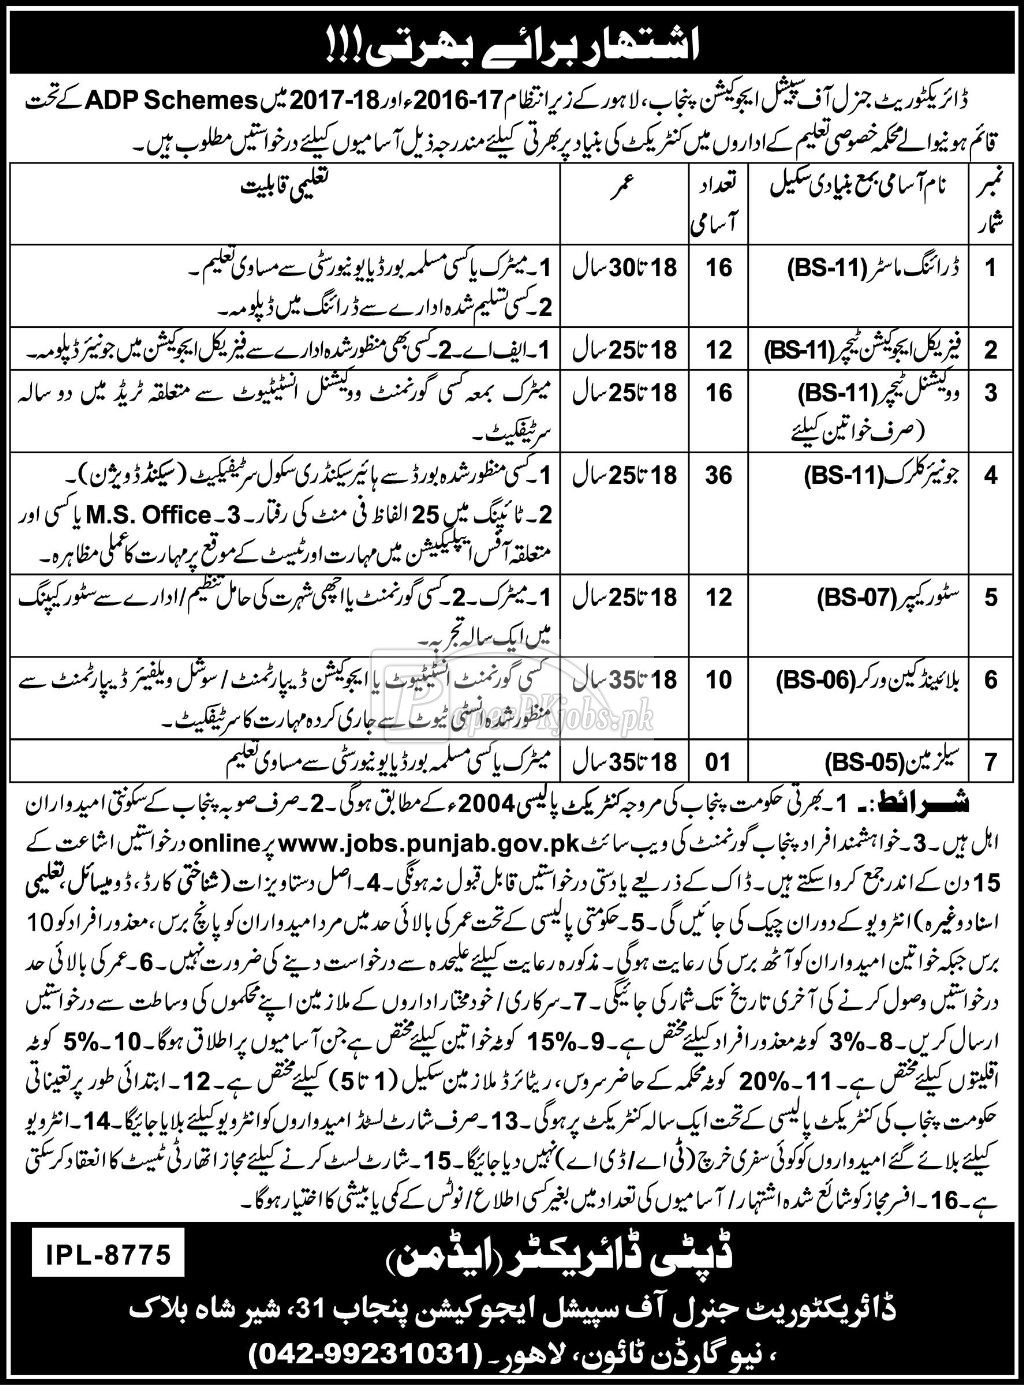 Directorate General of Special Education Punjab Lahore Jobs 2018